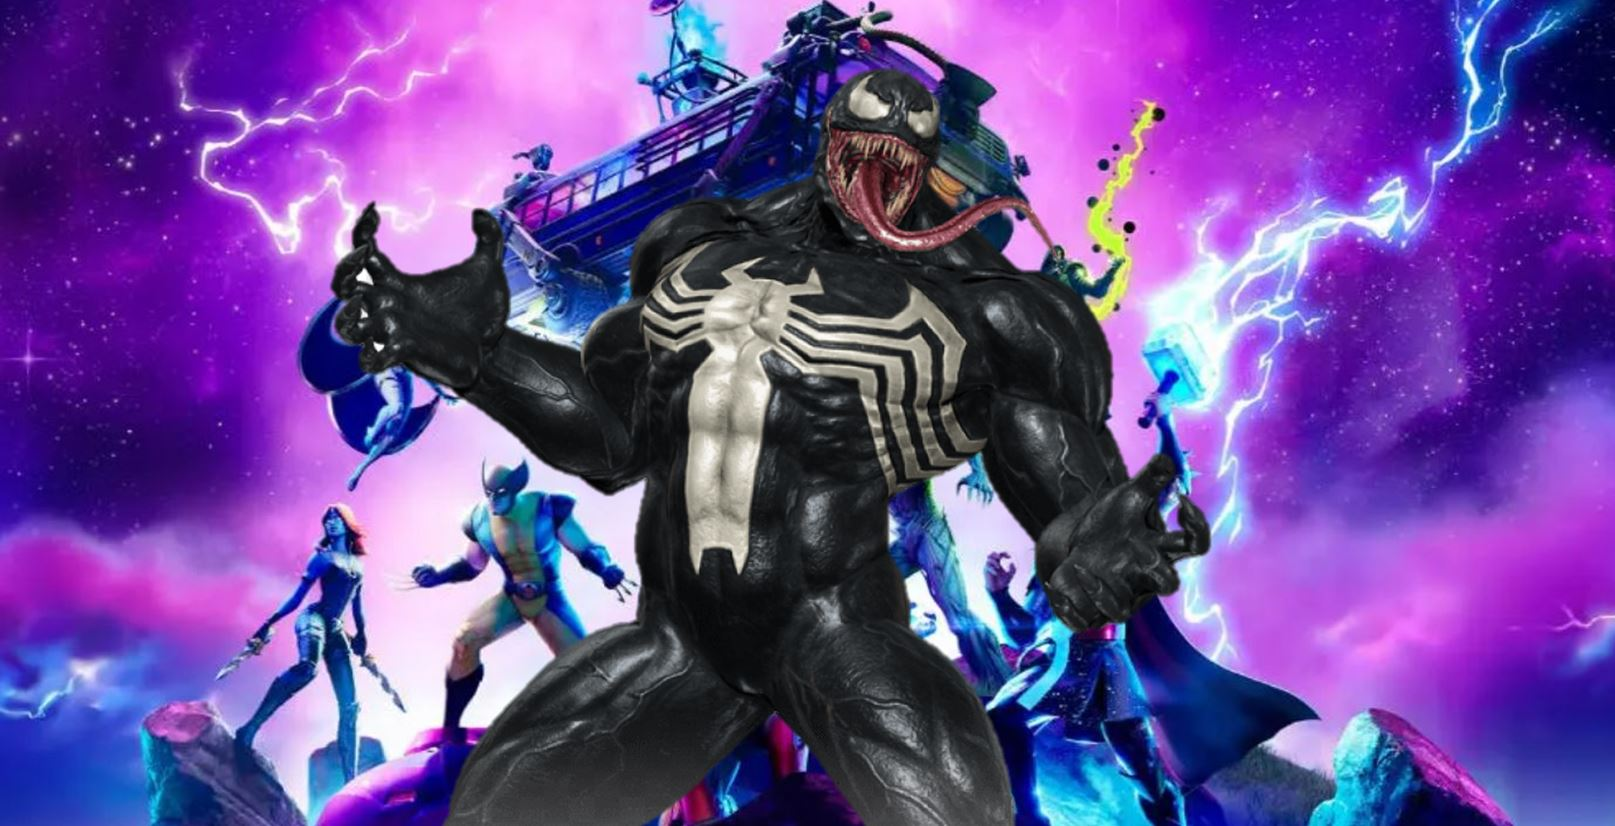 Fortnite Venom Skin Black Panther Galactus Skins Coming To The Item Shop Leak Fortnite Insider Although fairly straightforward, the material. fortnite venom skin black panther